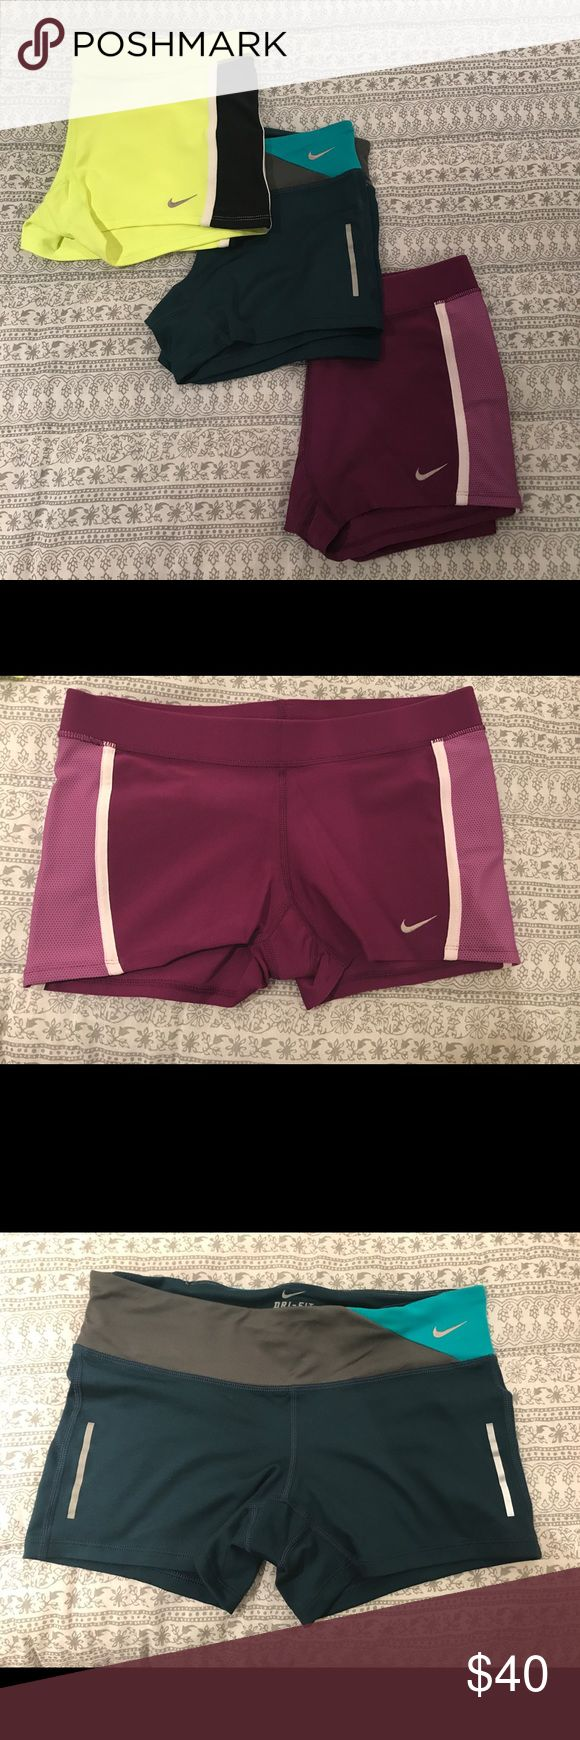 Nike Compression Shorts Bundle. Small and medium. New without tags. Yellow and Teal are size Medium, Purple are size small. Nike Shorts